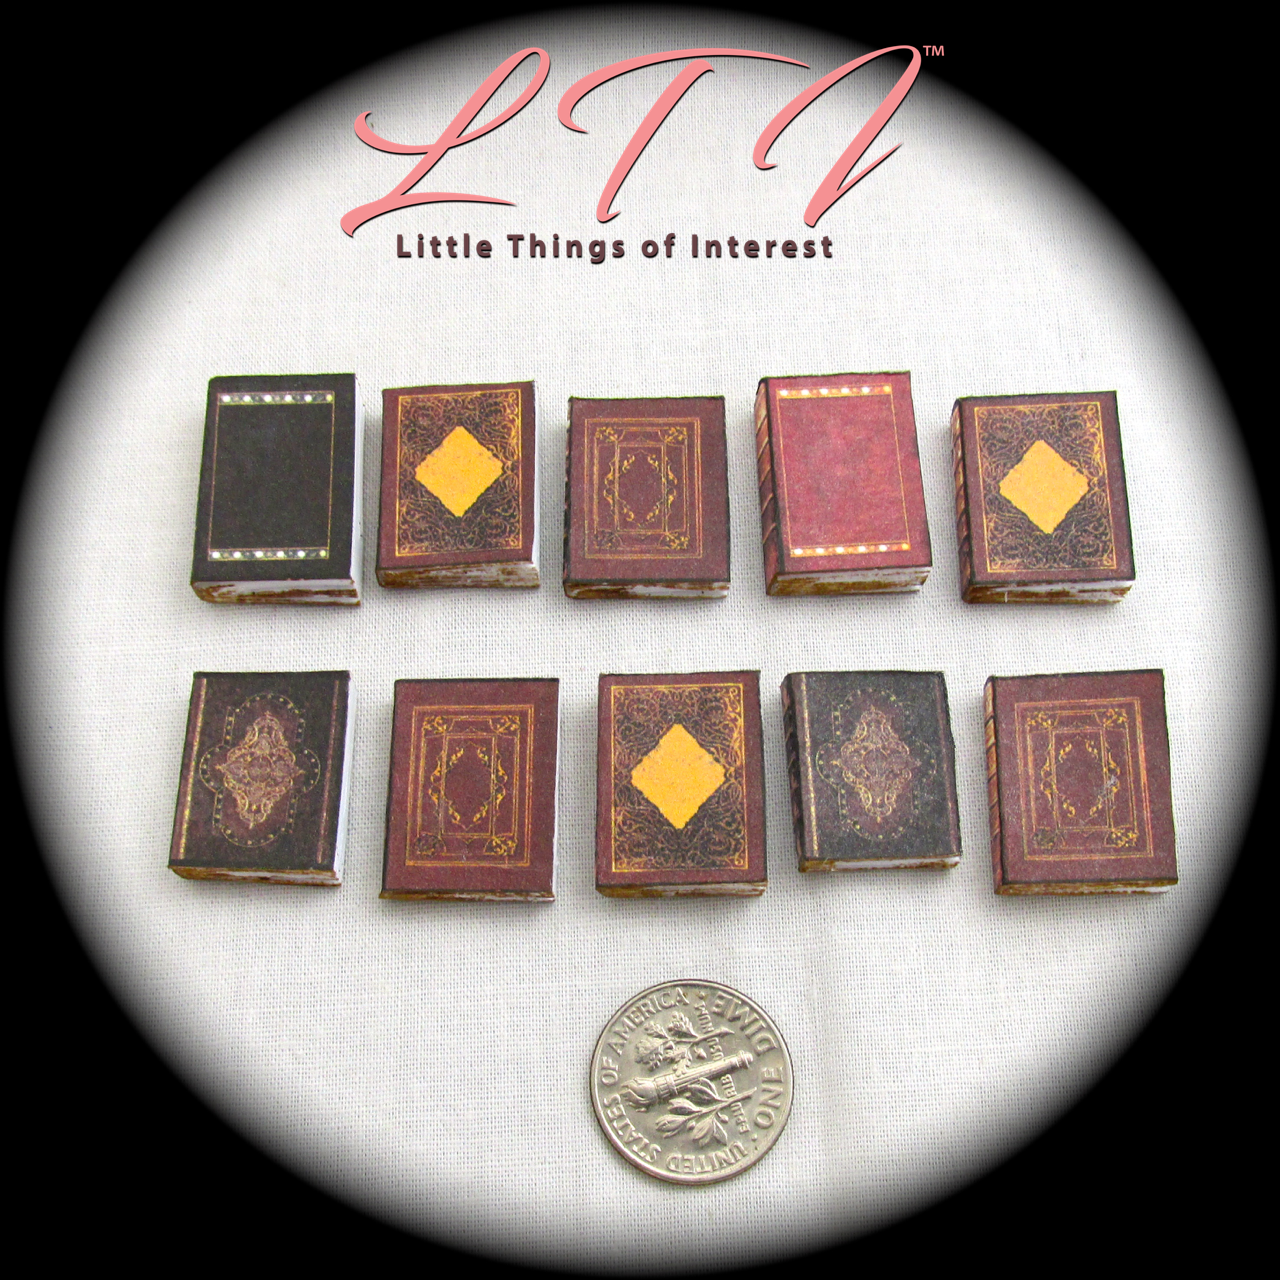 10 OLD LIBRARY BOOKS Miniature Books Set 1:12 Scale Dollhouse Prop Faux Books